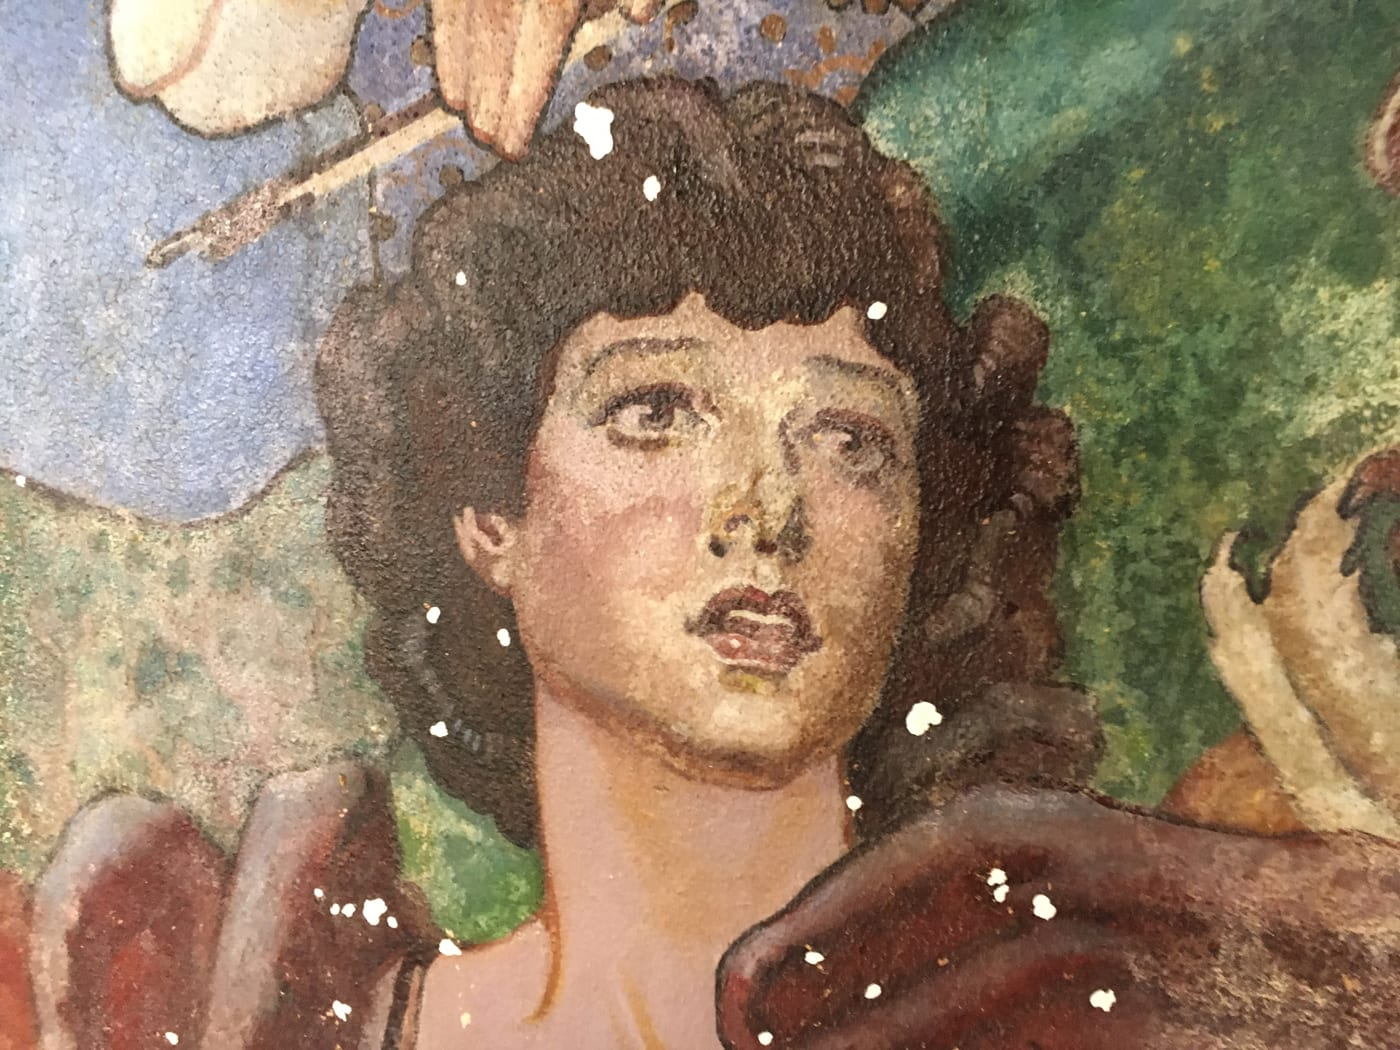 An art deco style painting of a figure with curling brown hair